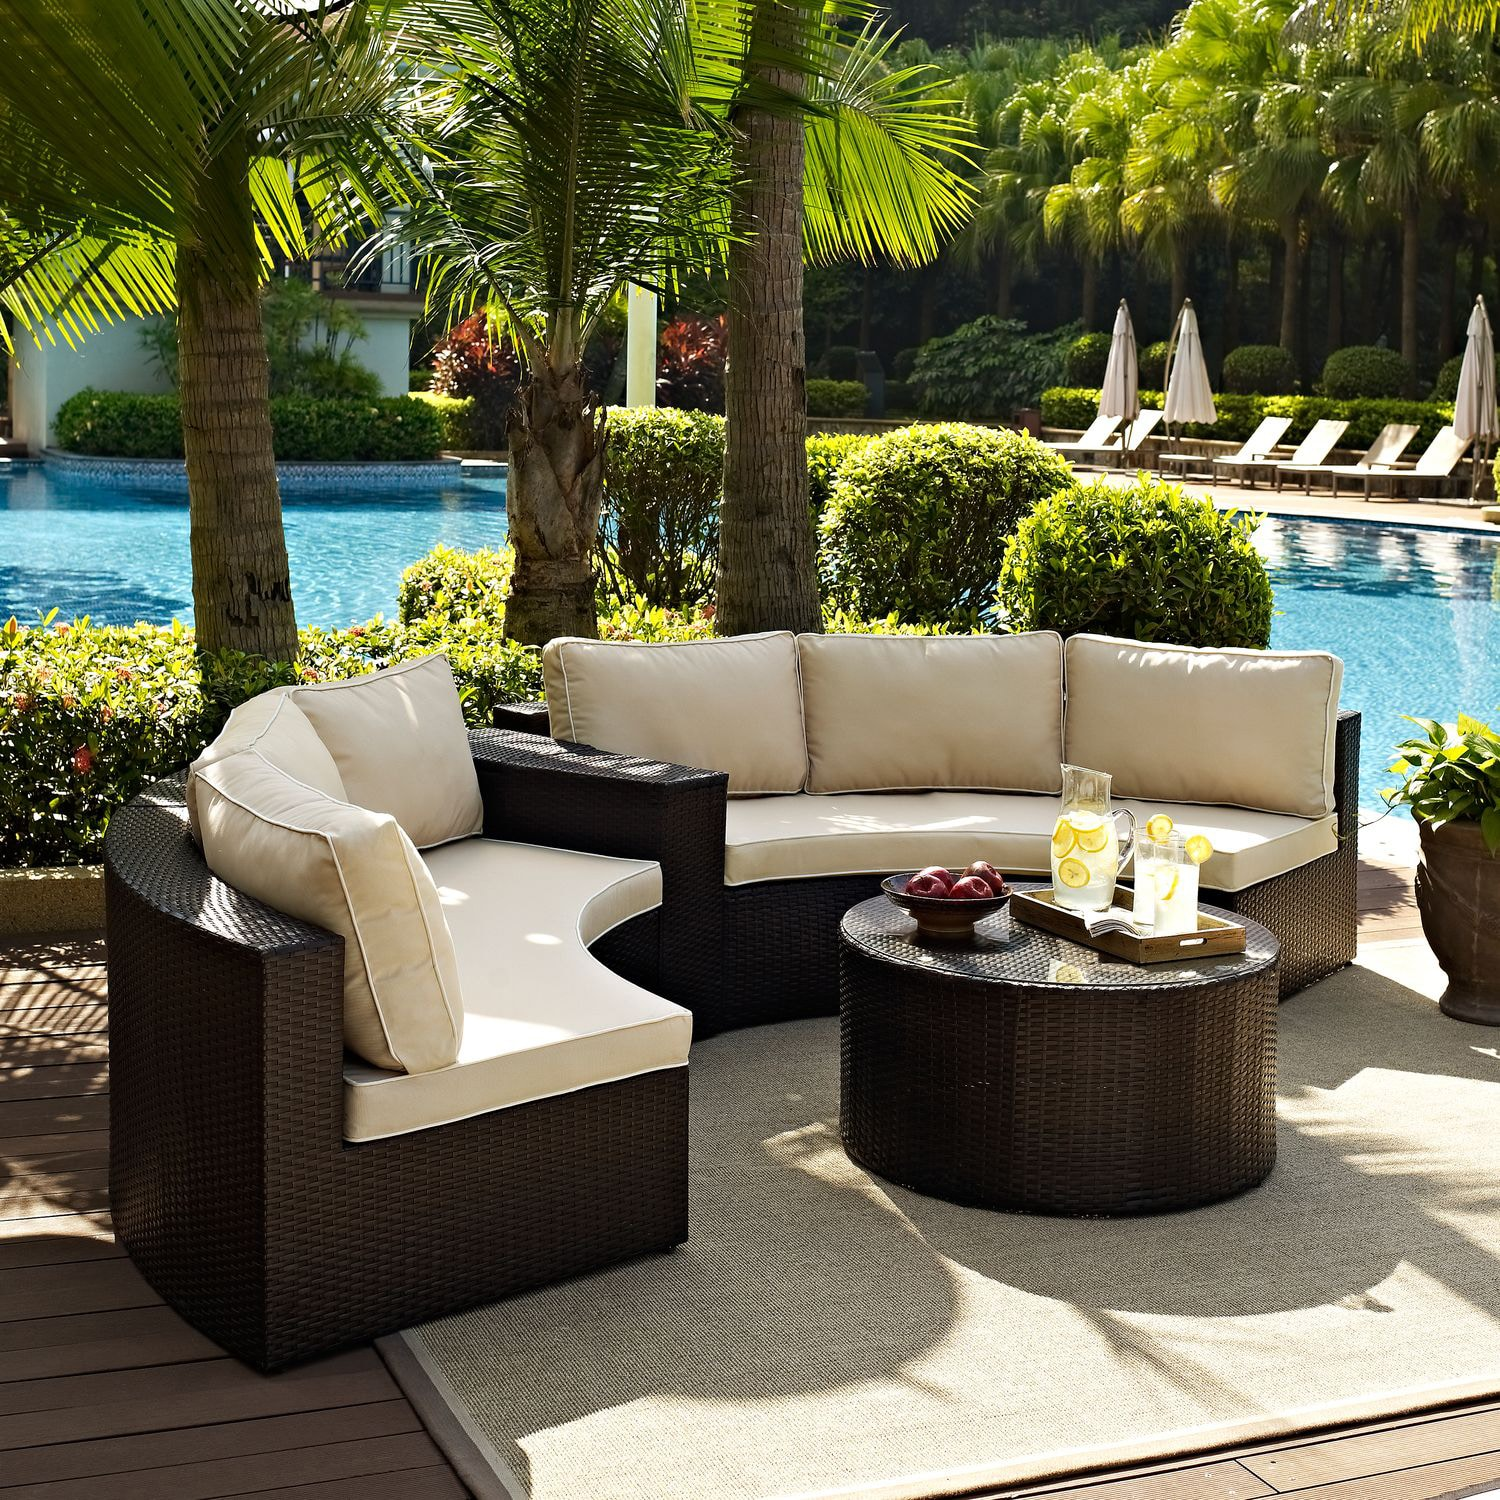 Genial Outdoor Furniture   Biltmore 3 Piece Outdoor Sectional And Cocktail Table  Set   Brown